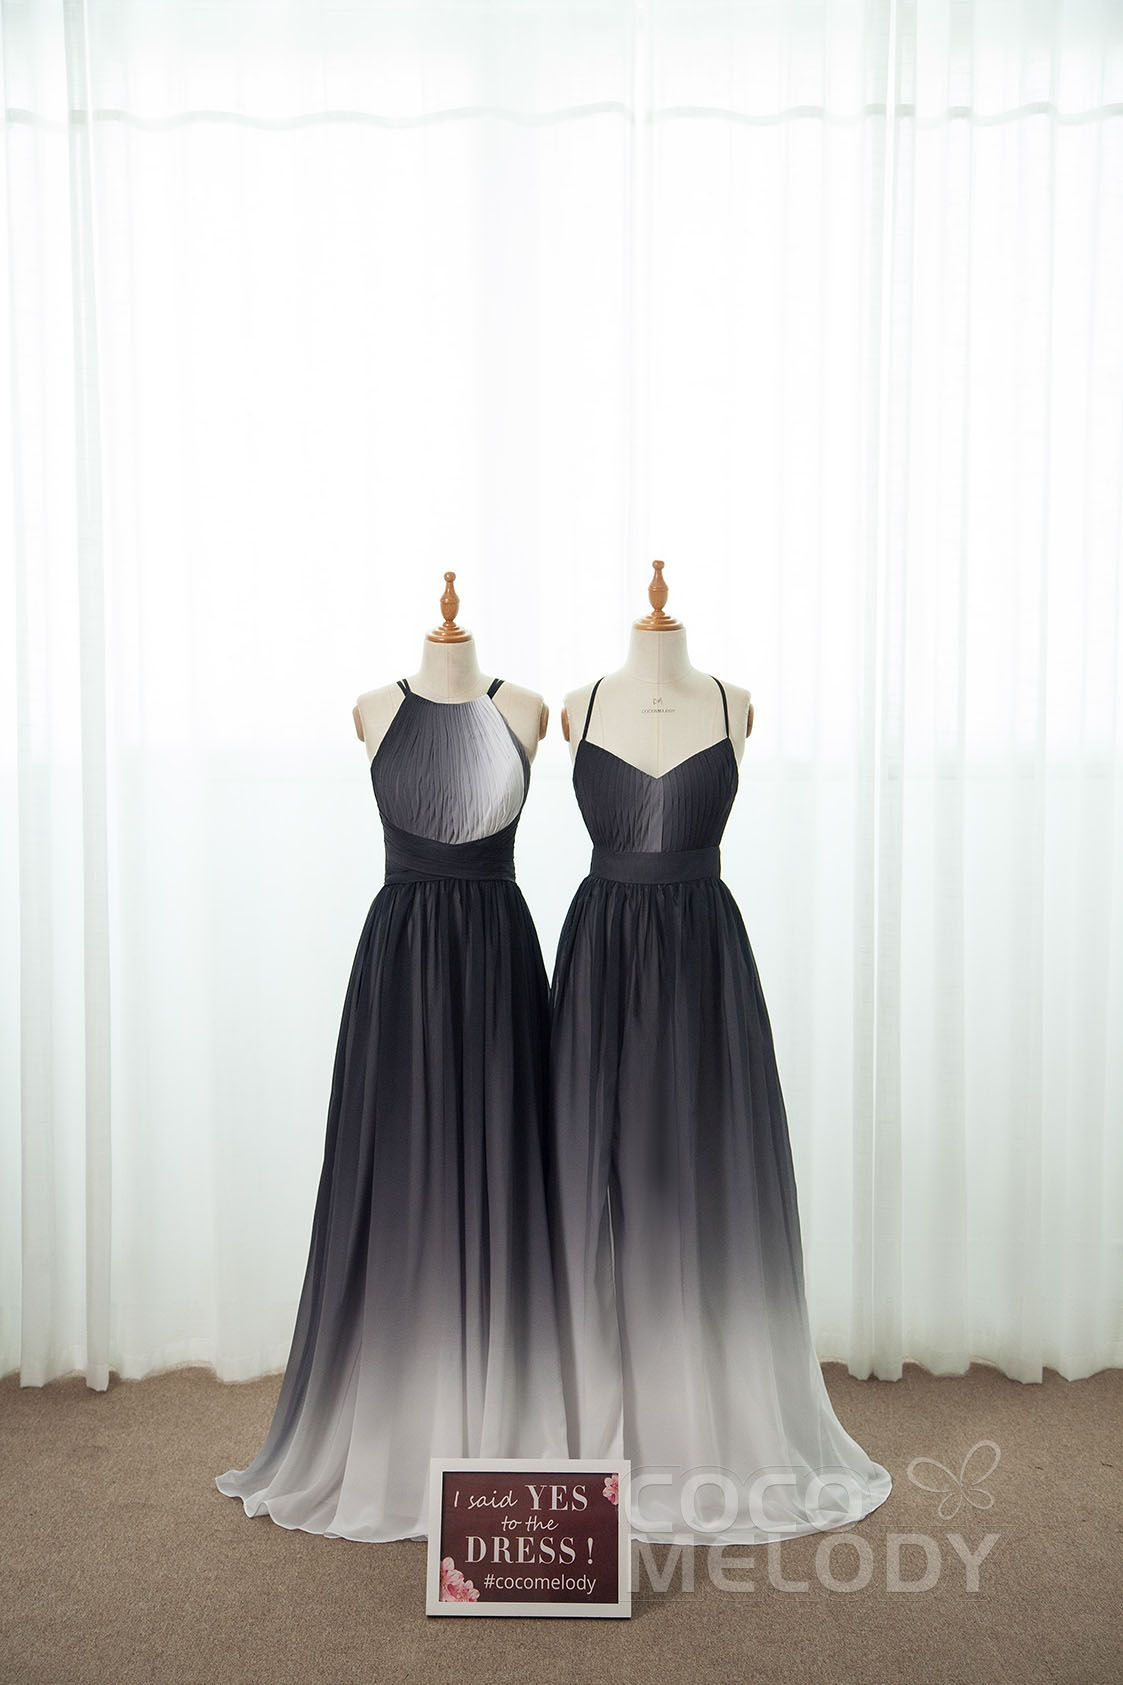 Black Ombre Shade Bridesmaid Dresses For Your Maids All Sizes And Customization Option Bridesmaiddresses Blac Ombre Bridesmaid Dresses Dresses Bridesmaid [ 1685 x 1123 Pixel ]